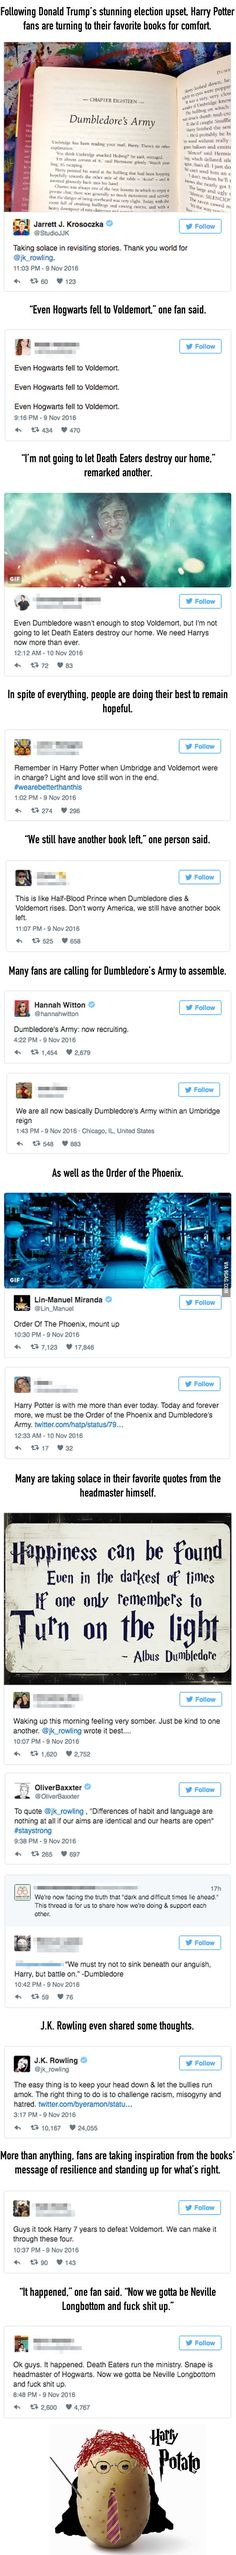 People Are Turning To Harry Potter For Comfort After The Election - 9GAG